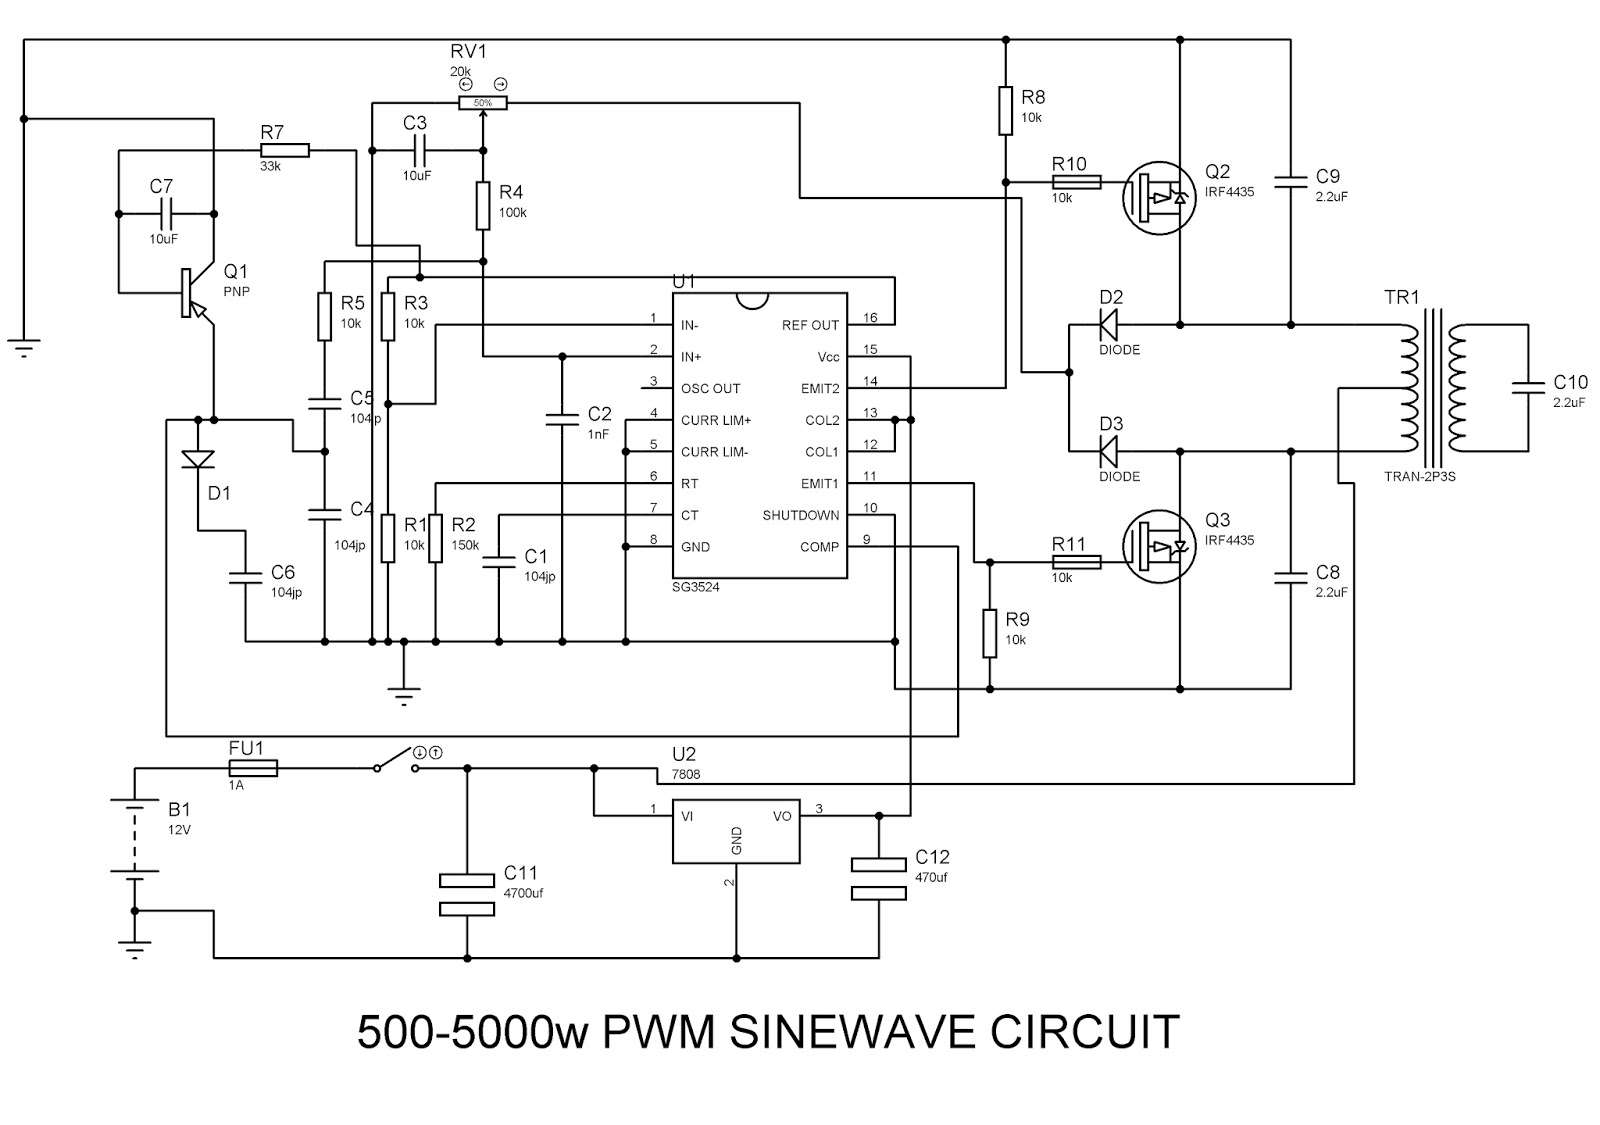 5000W INVERTER CIRCUIT DIAGRAM PDF